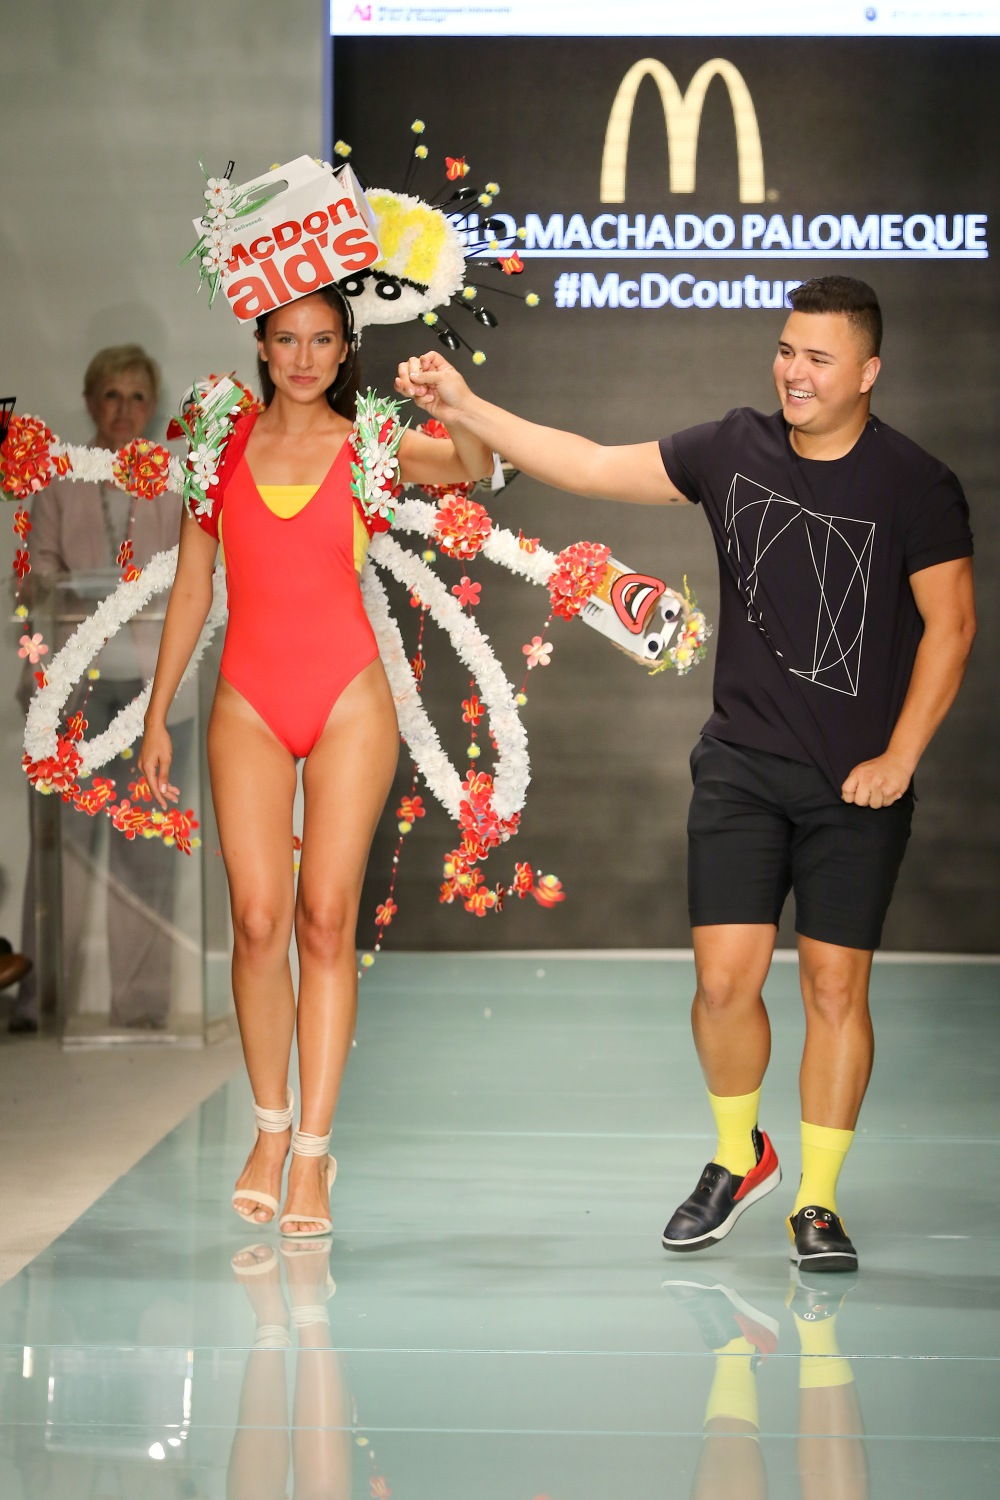 Winner of 2017 McDCouture Swim Resort -Cabrera/Betancourt $5k Scholarship